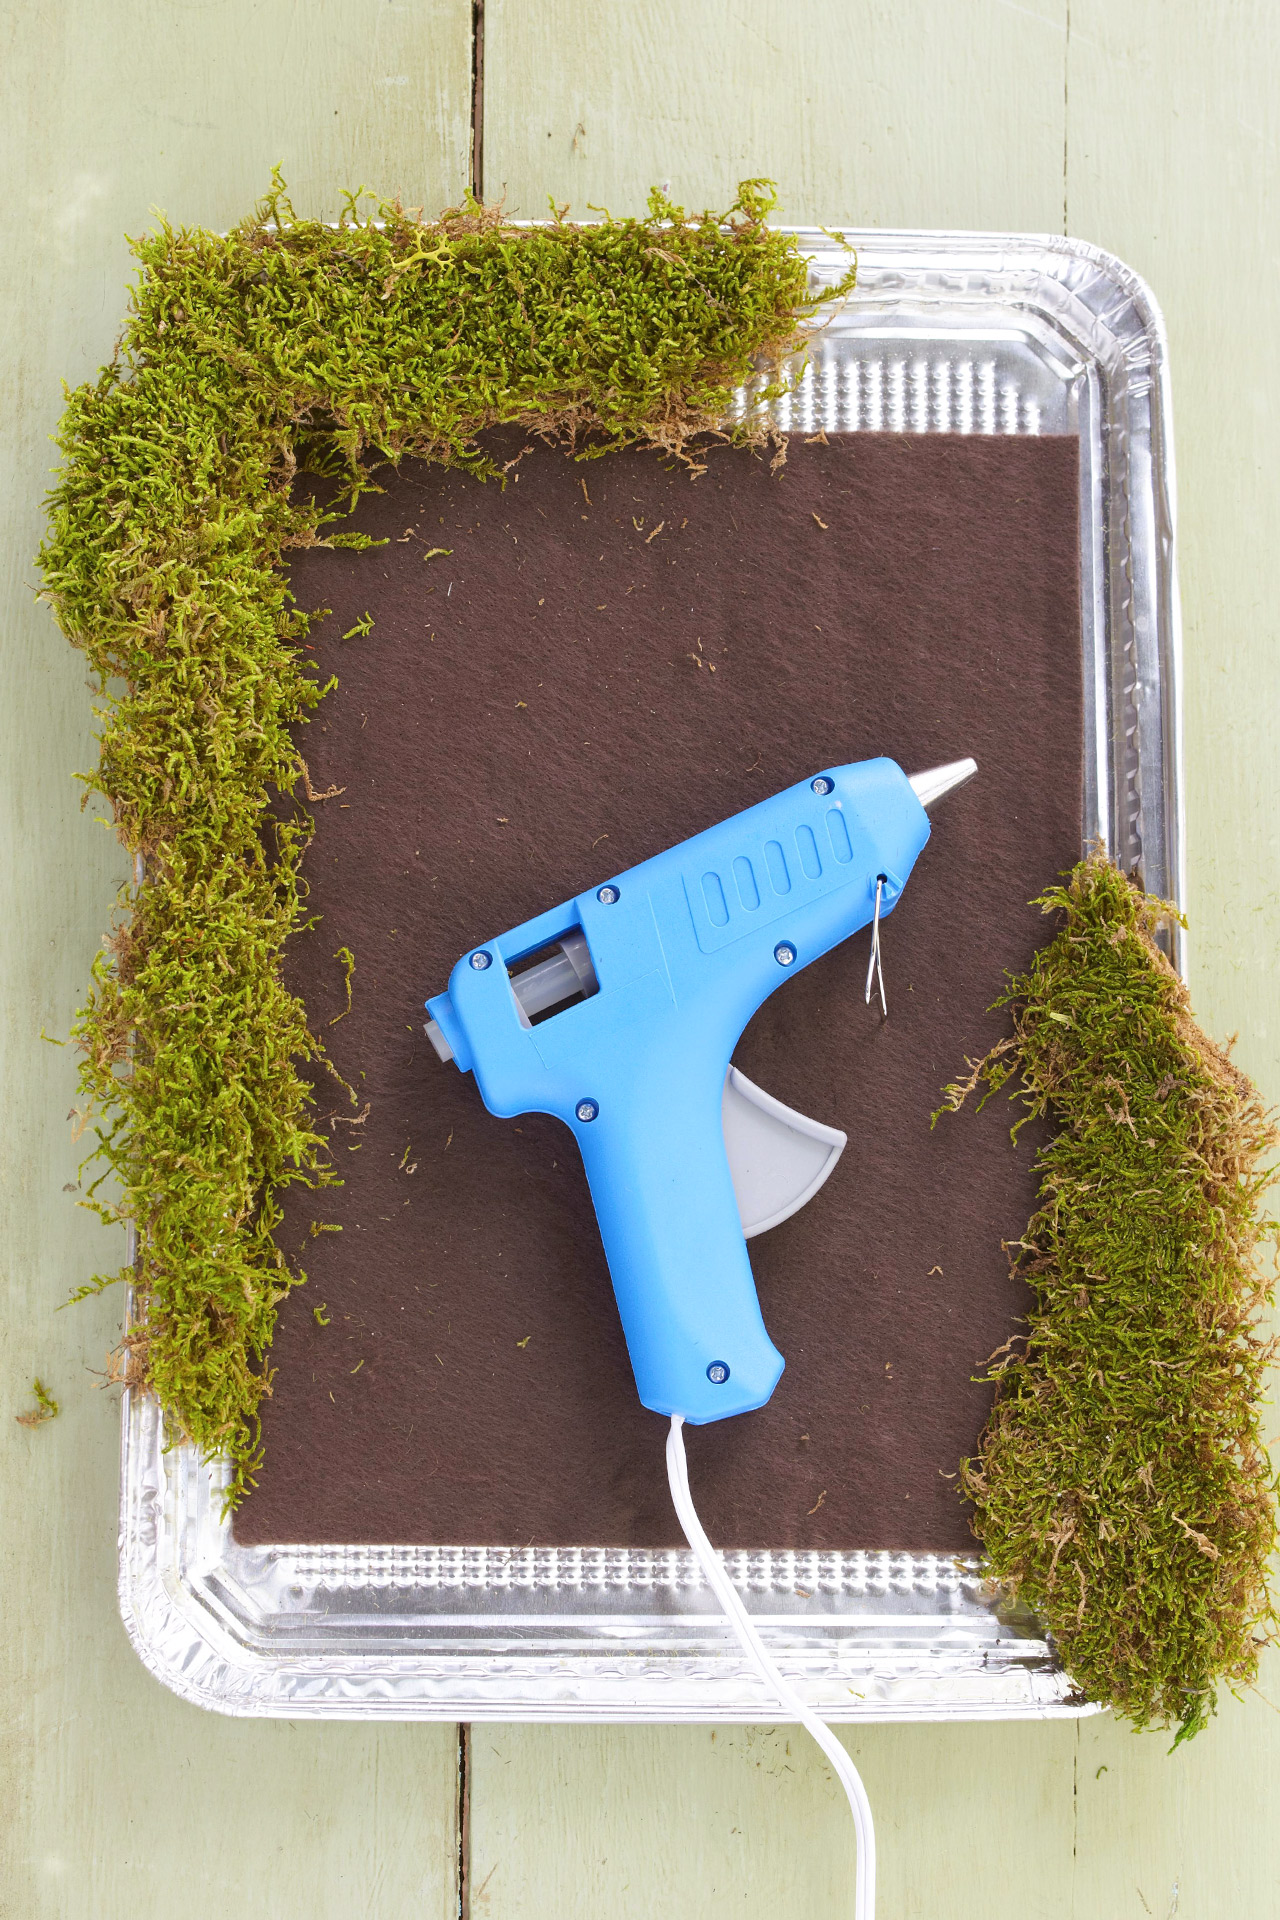 preserved moss covered tray with glue gun